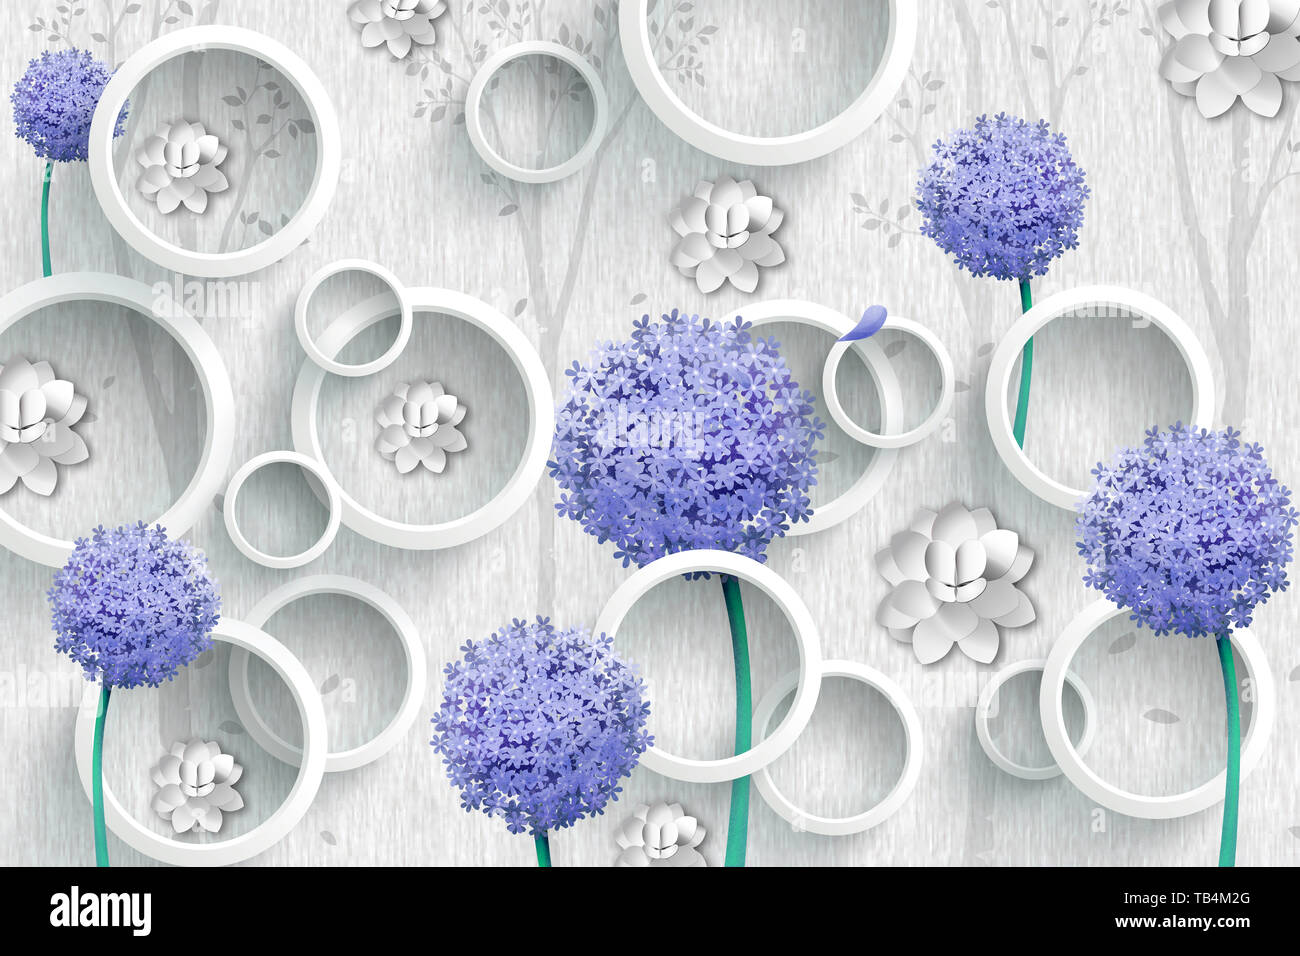 3d wallpaper abstract background with gray circles and purple flowers TB4M2G